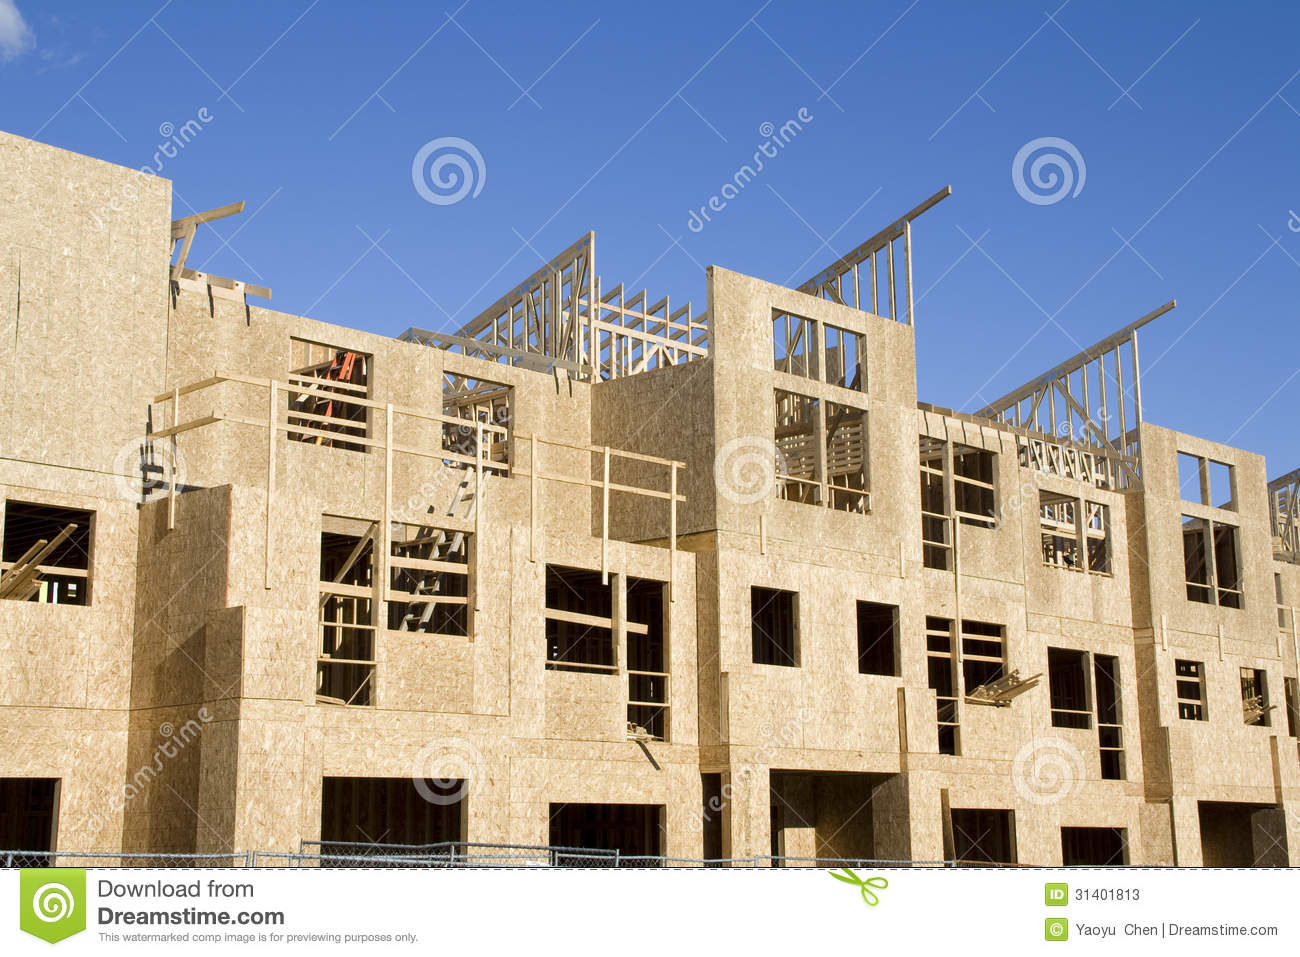 New home construction stock photos image 31401813 for New homes seattle washington area